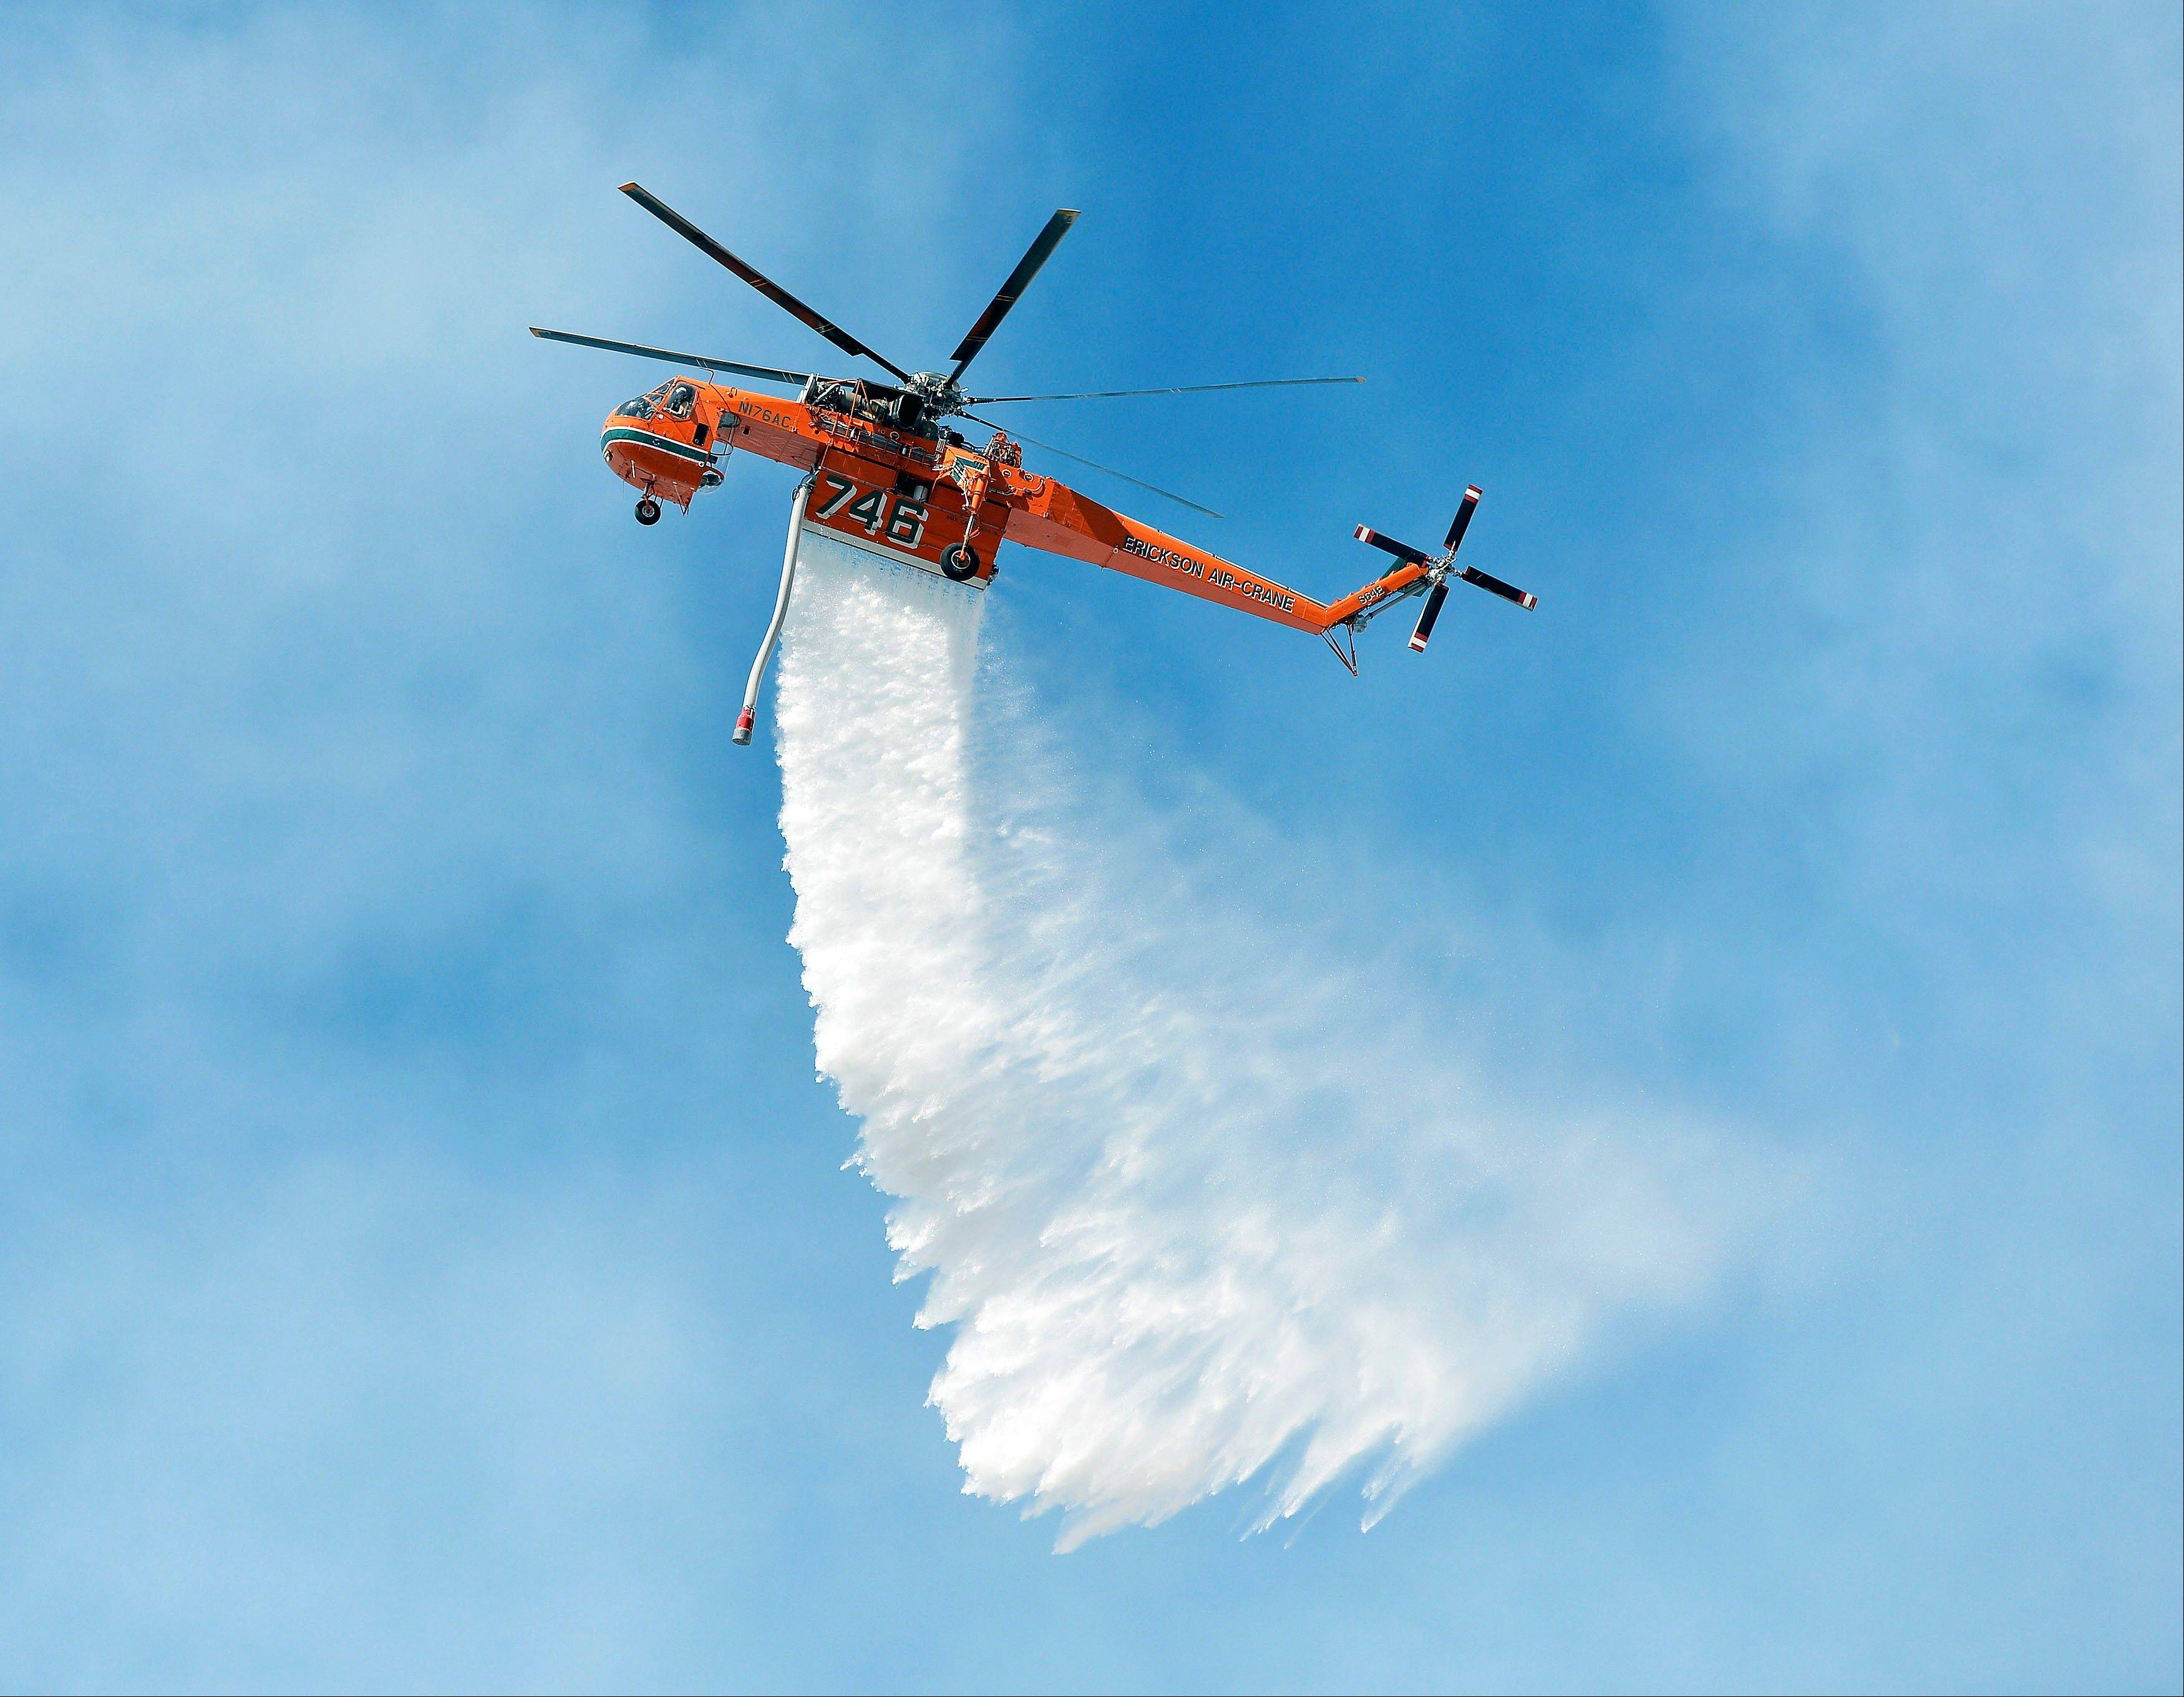 A Sikorsky firefighting helicopter makes a water drop on flames above Baker Canyon in Orange County, Calif. Sunday, Oct. 6, 2013. A mulch pile fire reported late Sunday morning quickly spread to surrounding wild vegetation, said Orange County Fire Authority Capt. Steve Concialdi. No homes were threatened.